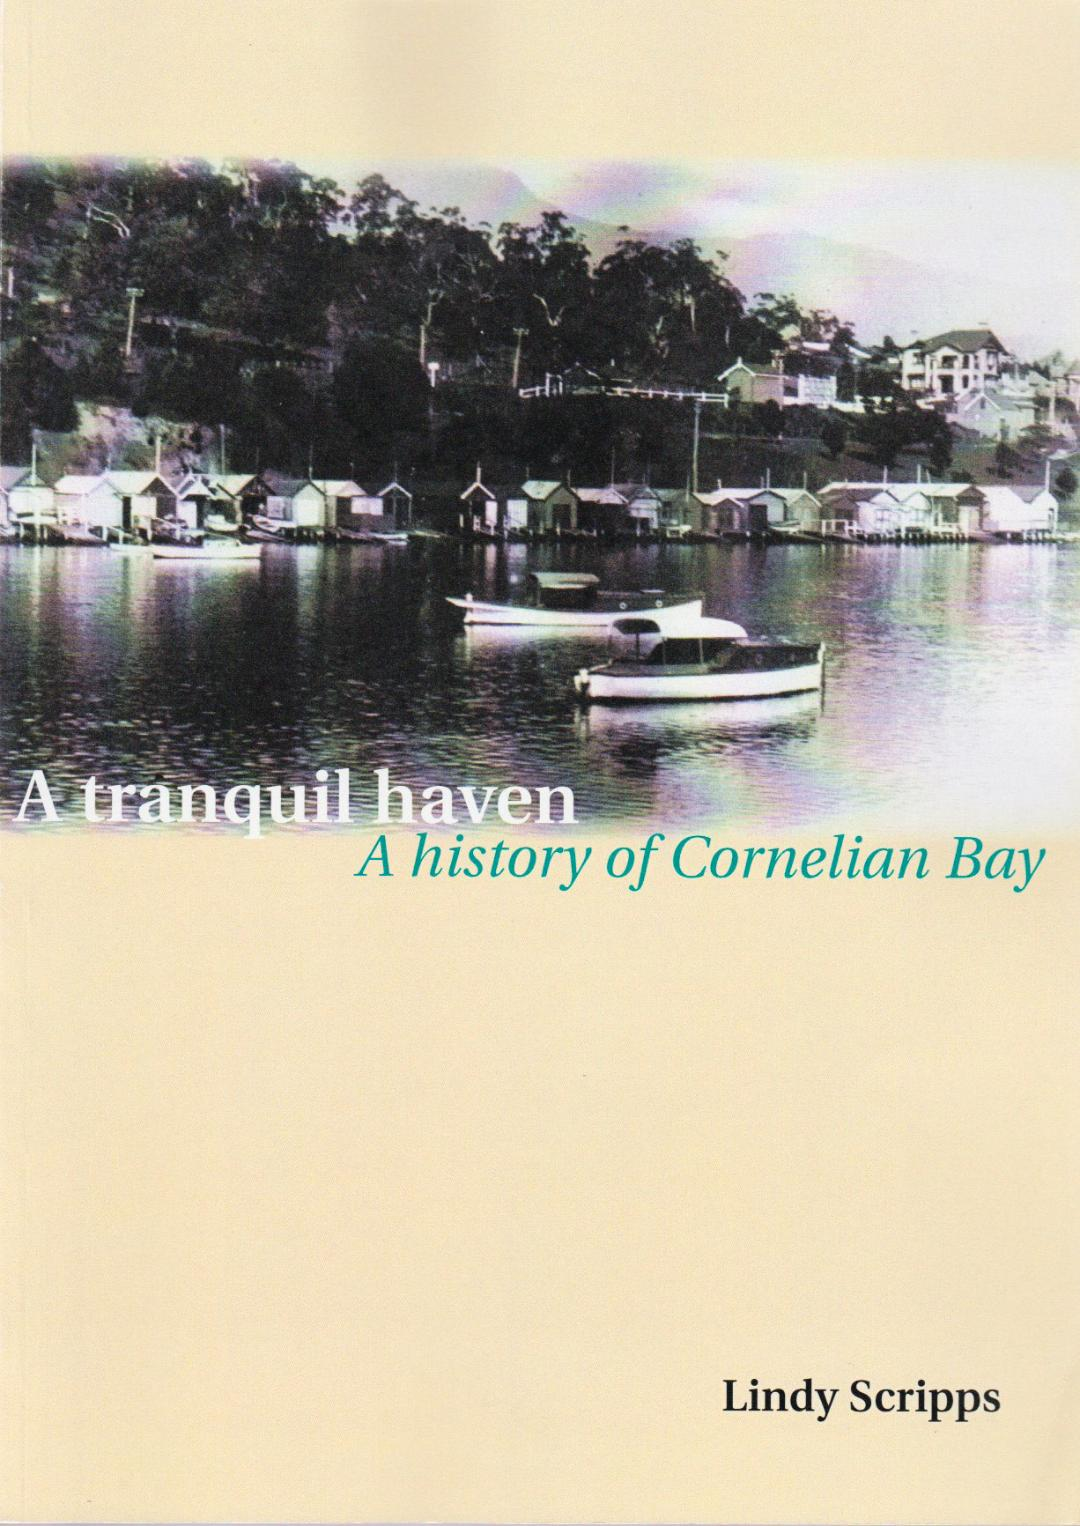 A Tranquil Haven - A History of Cornelian Bay